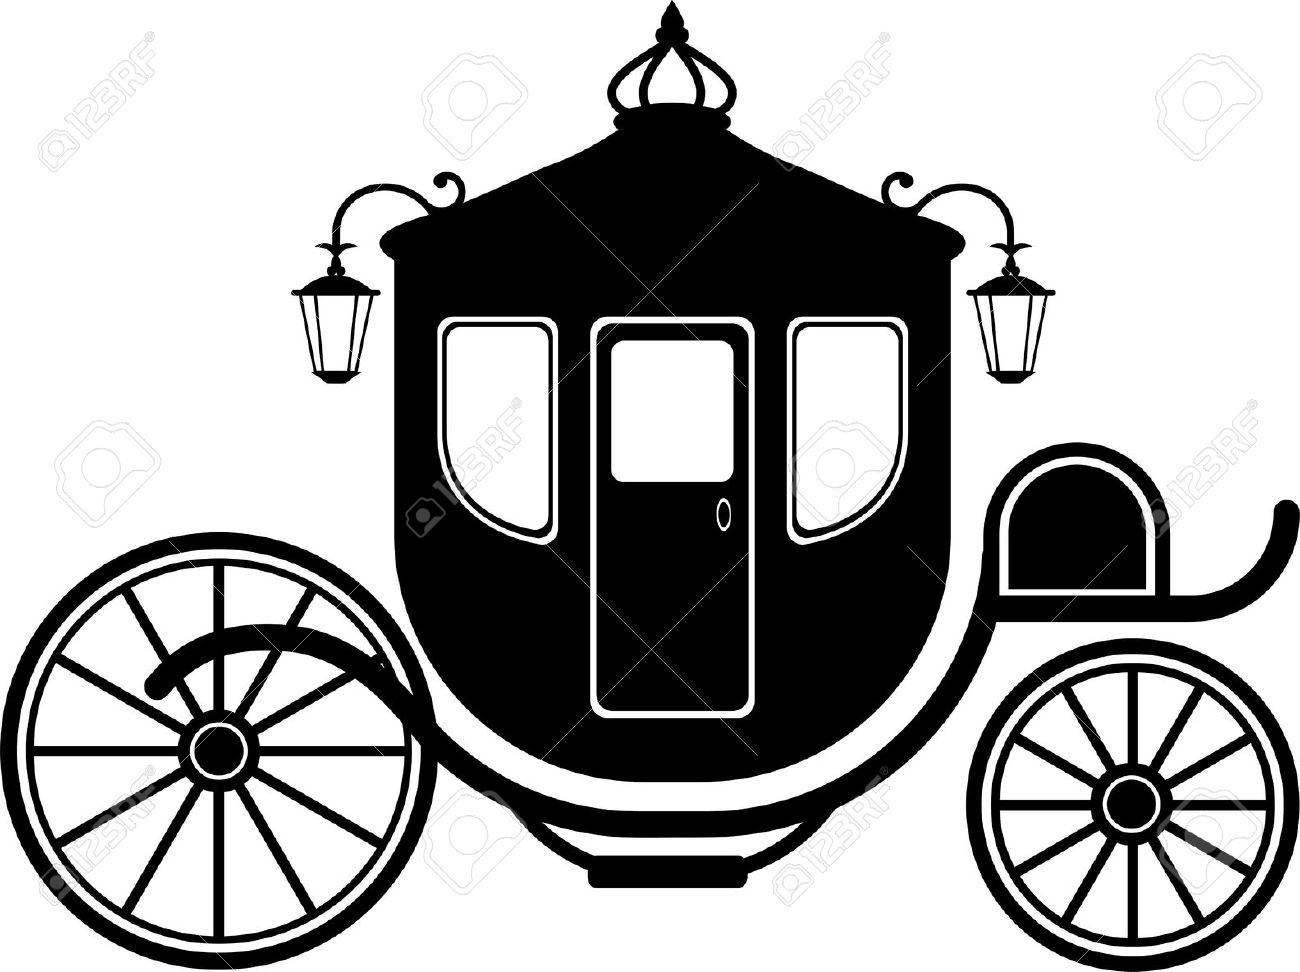 Carriage clipart silhouette.  in over white